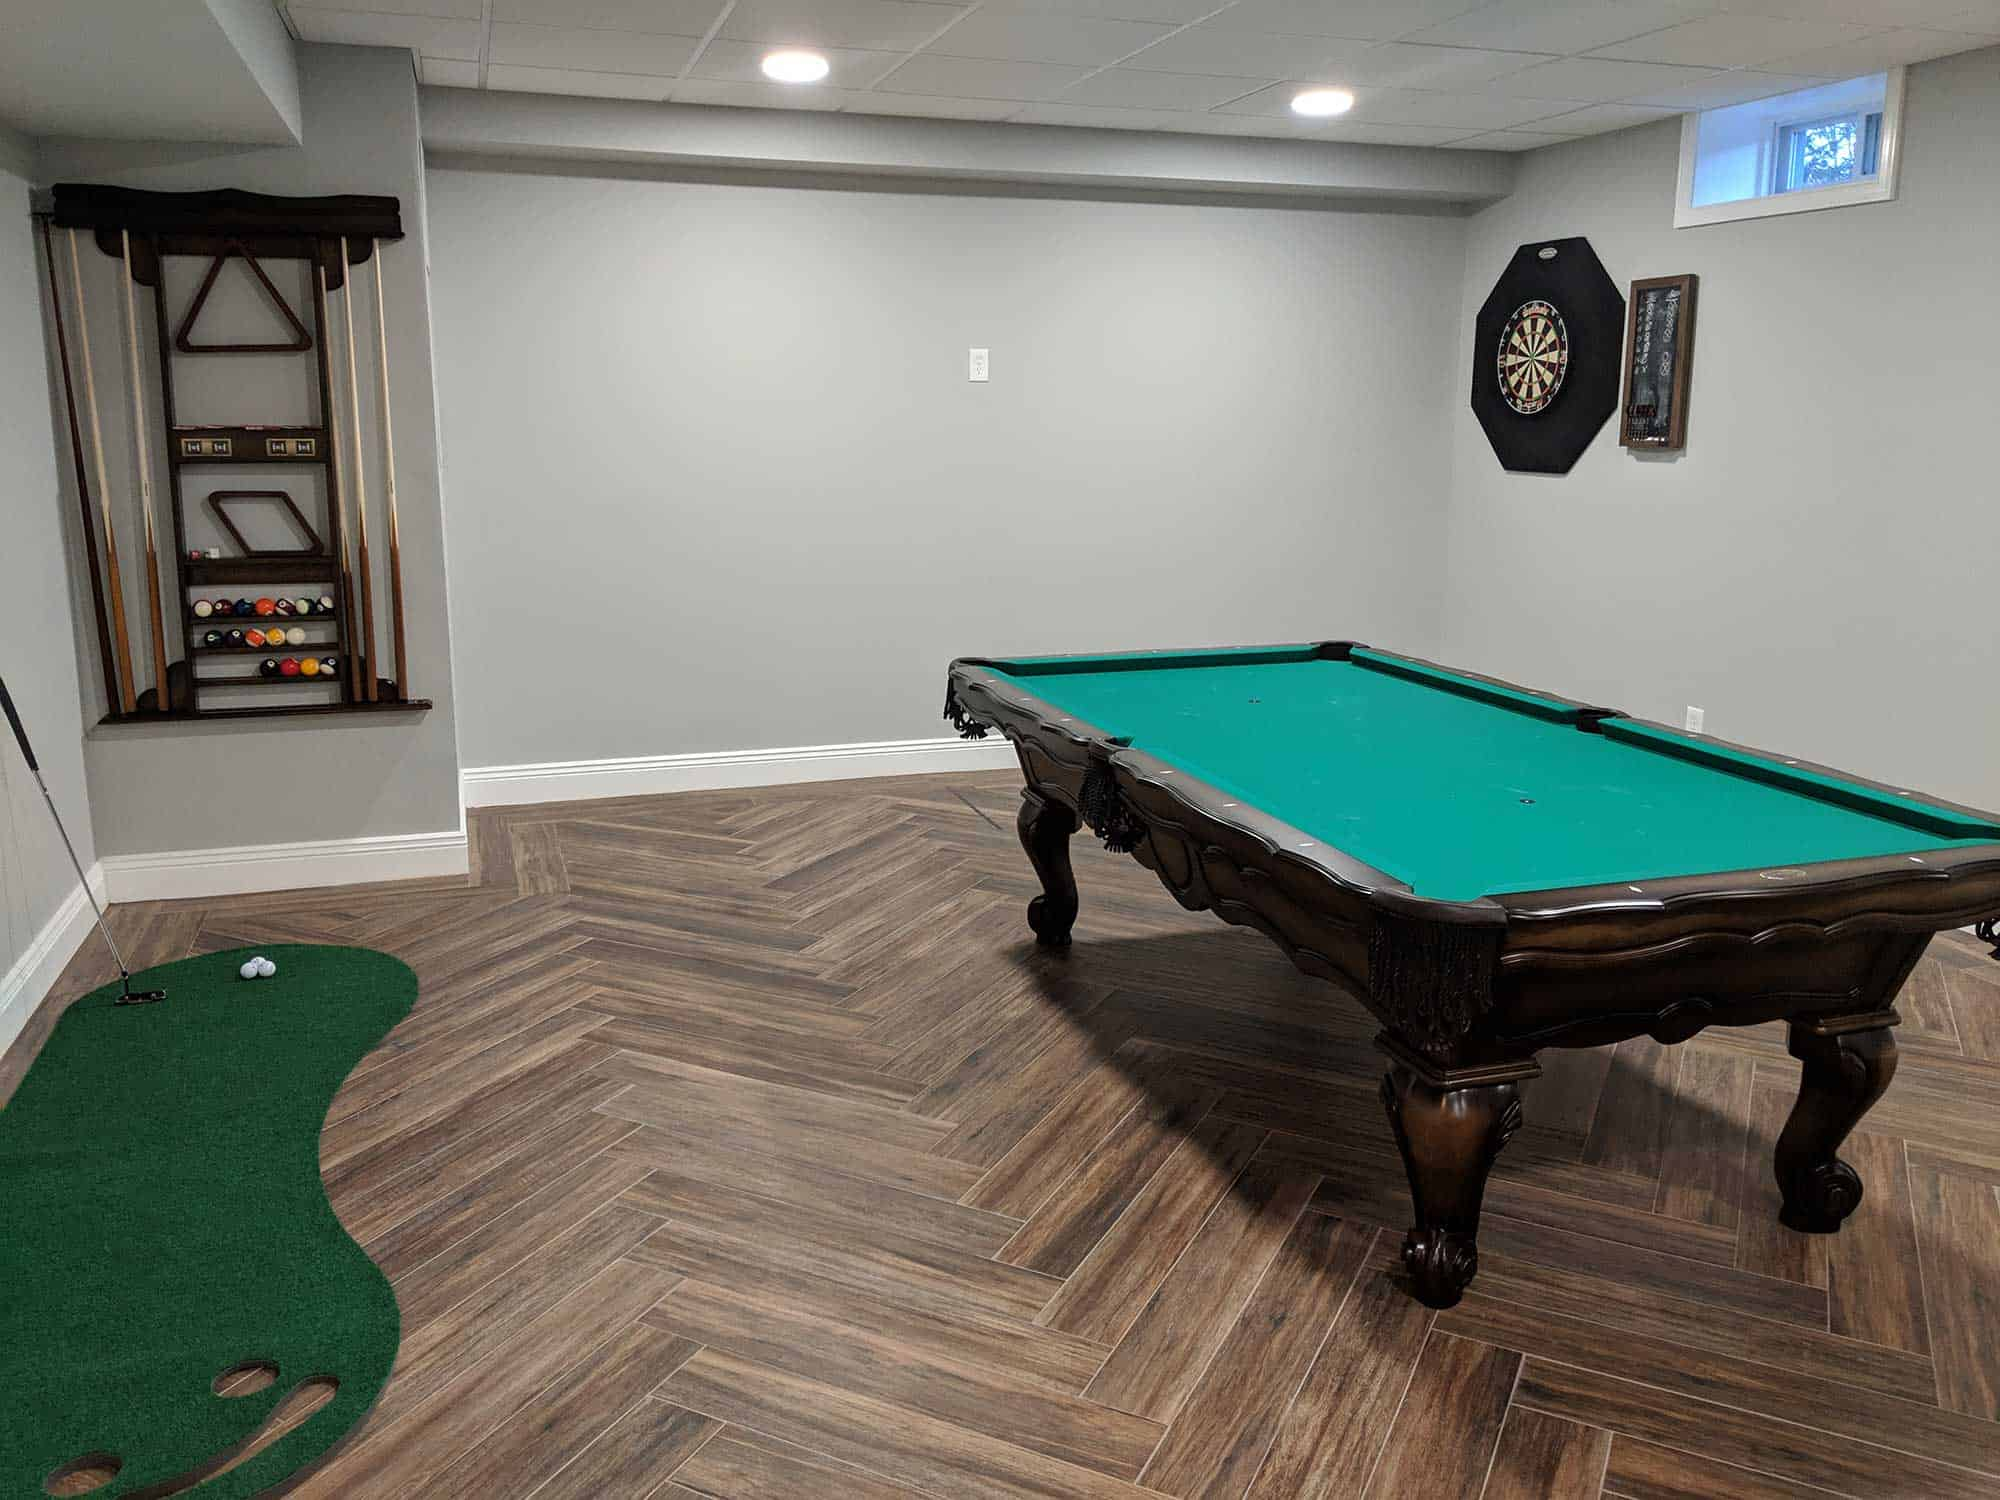 billiards room with darts and golf and a cue rack